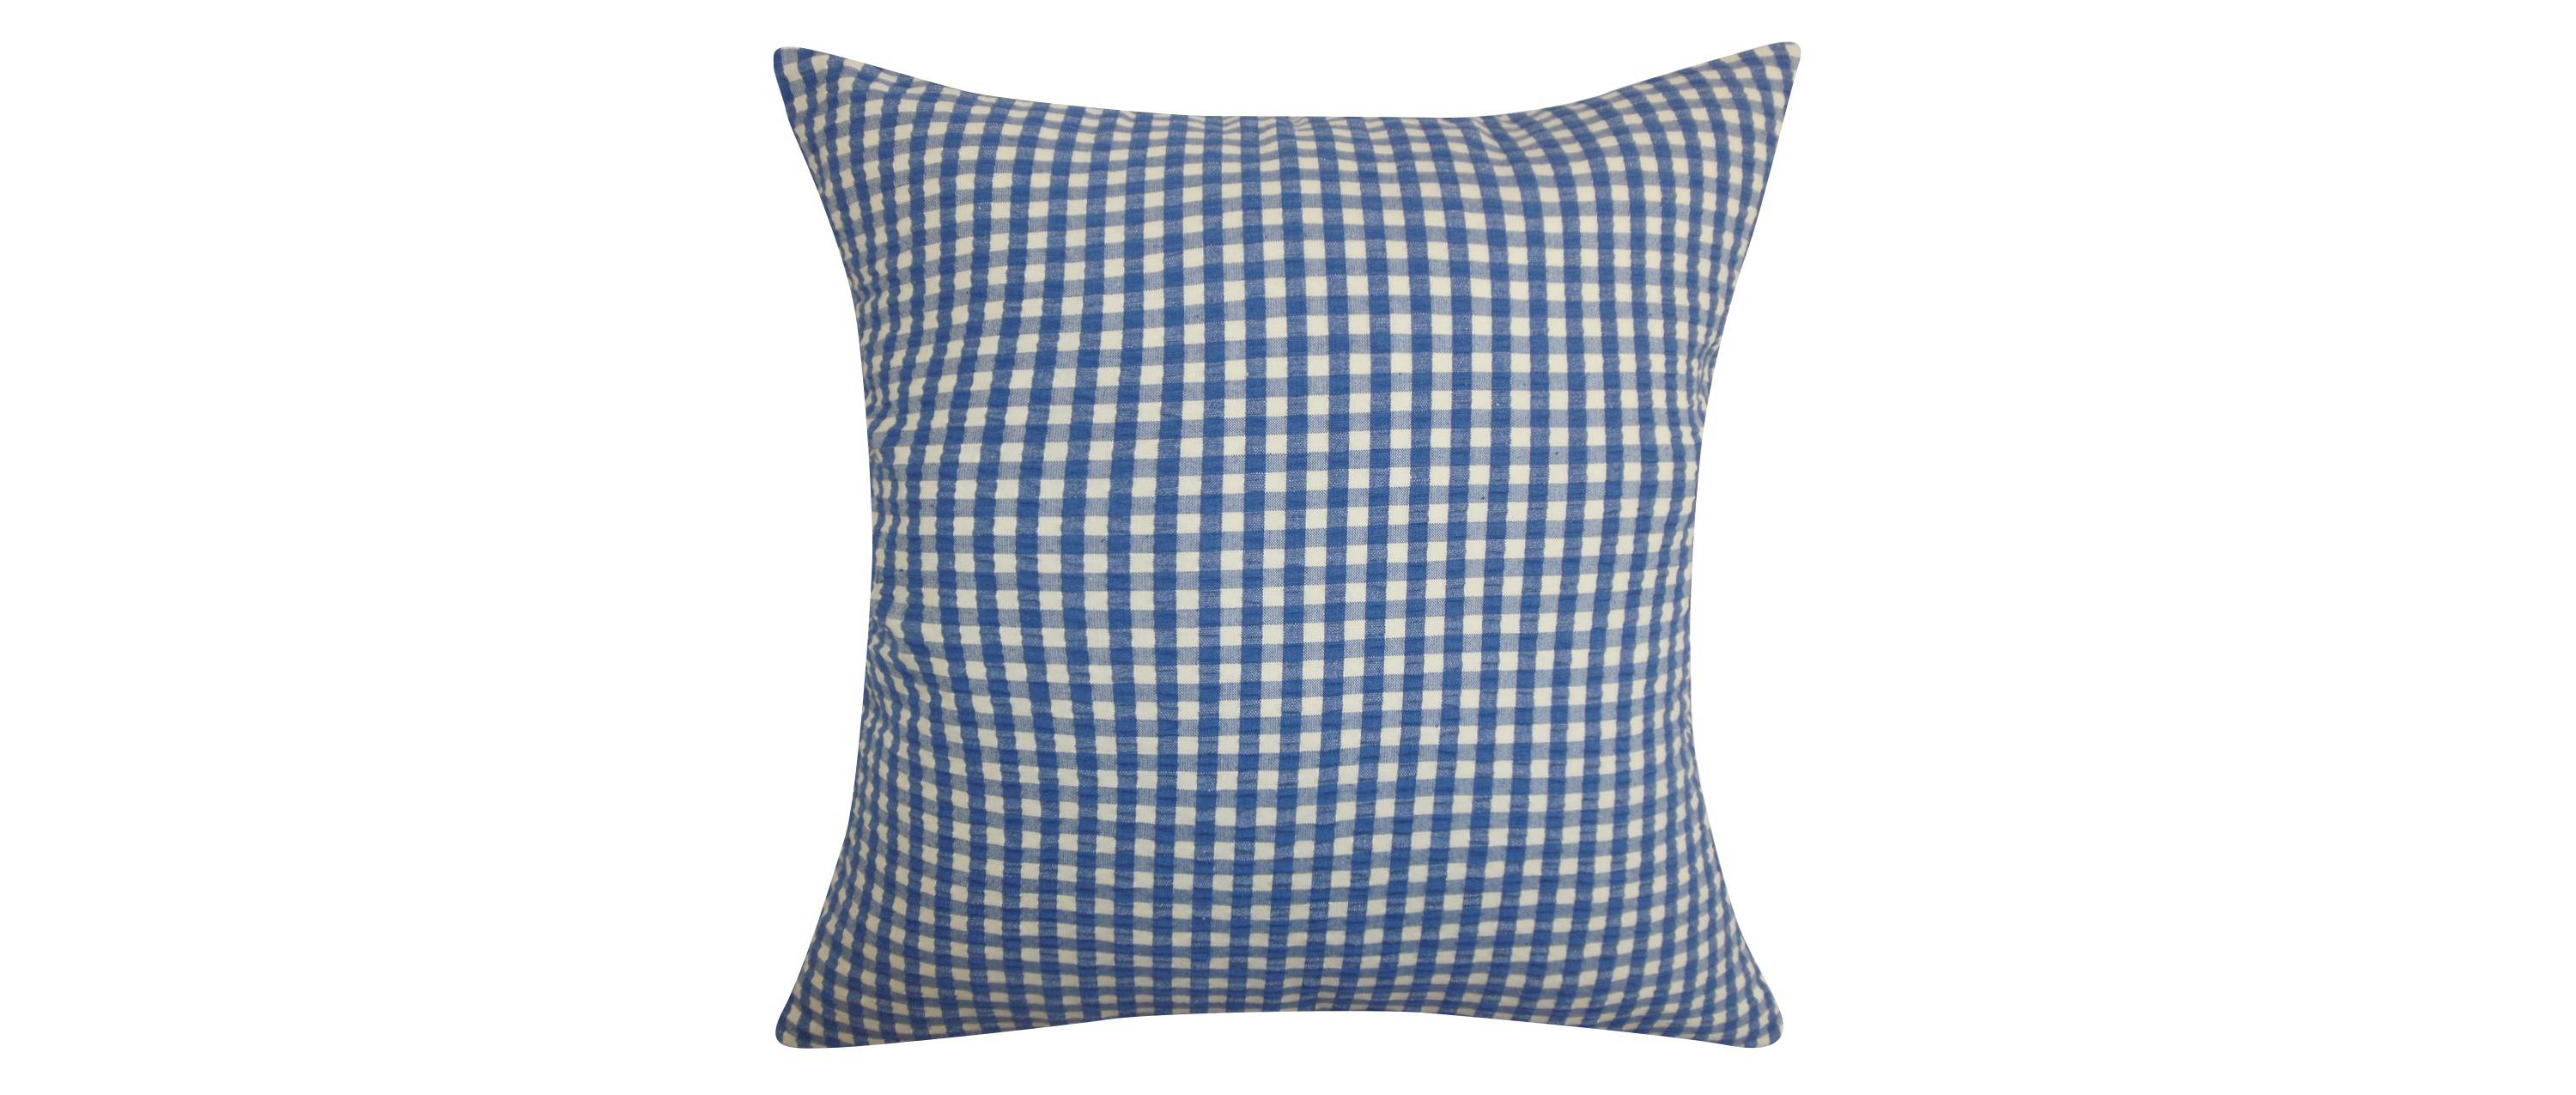 Gingham throw pillow